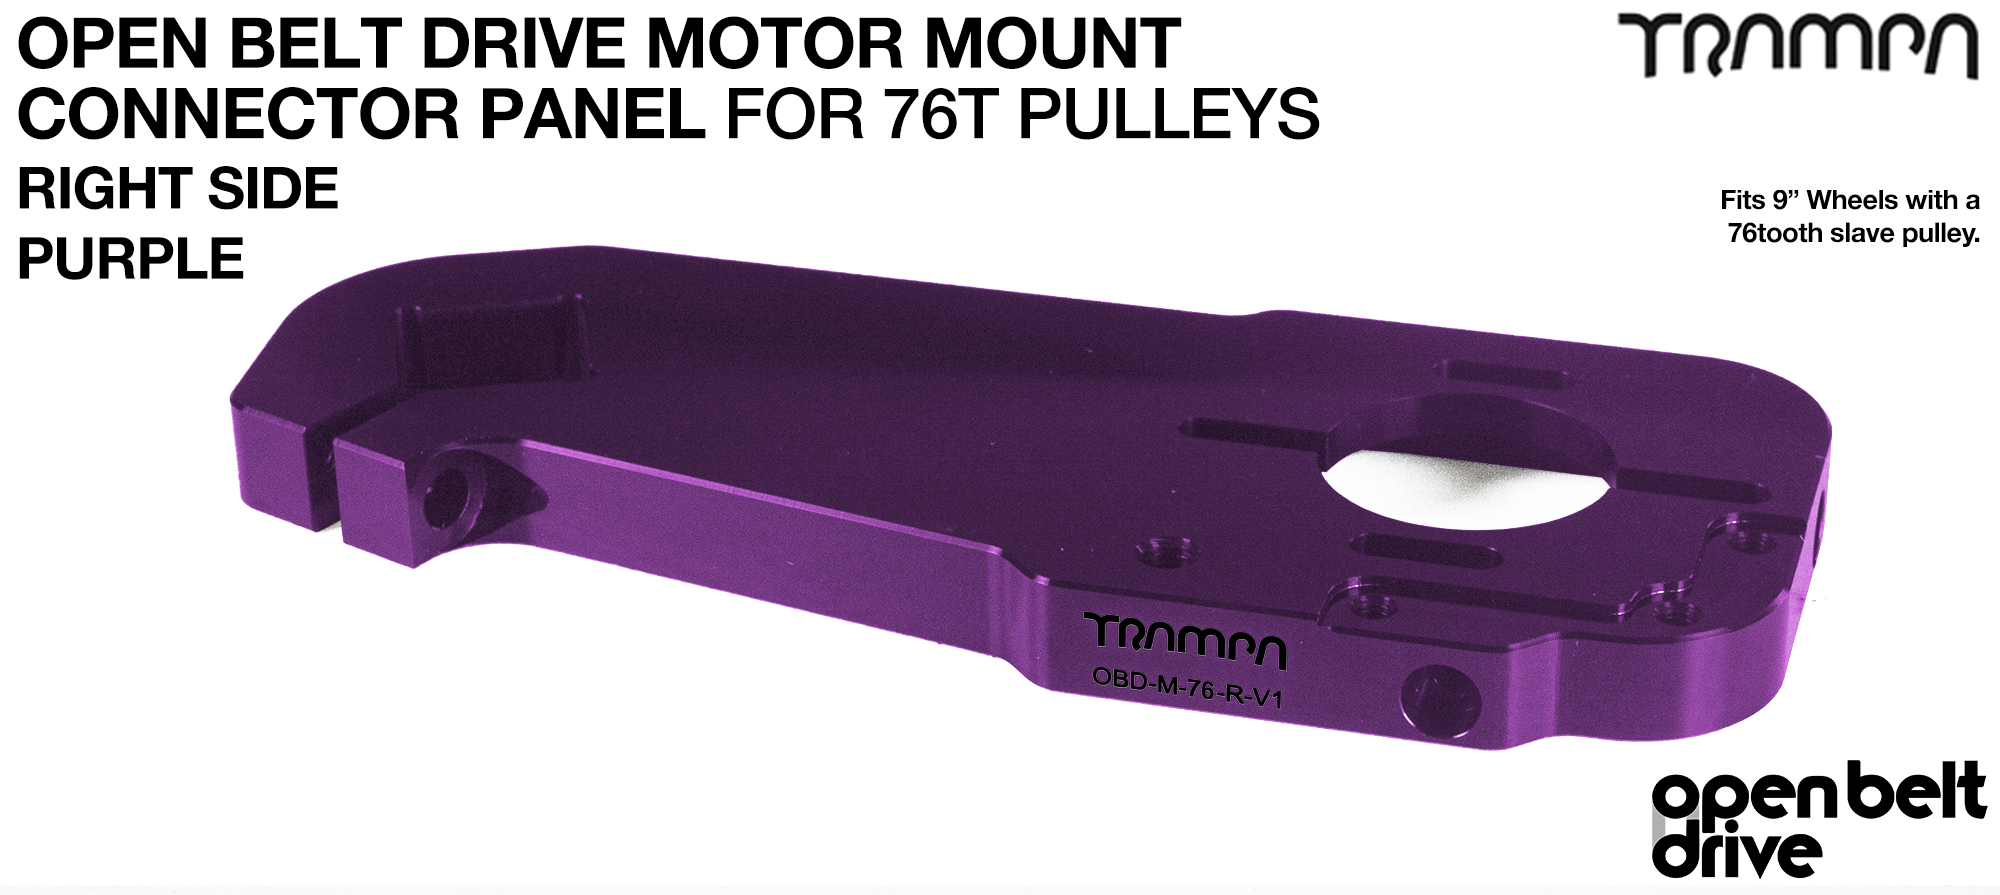 OBD Motor Mount Connector Panel for 76 tooth Pulleys - GOOFY - PURPLE